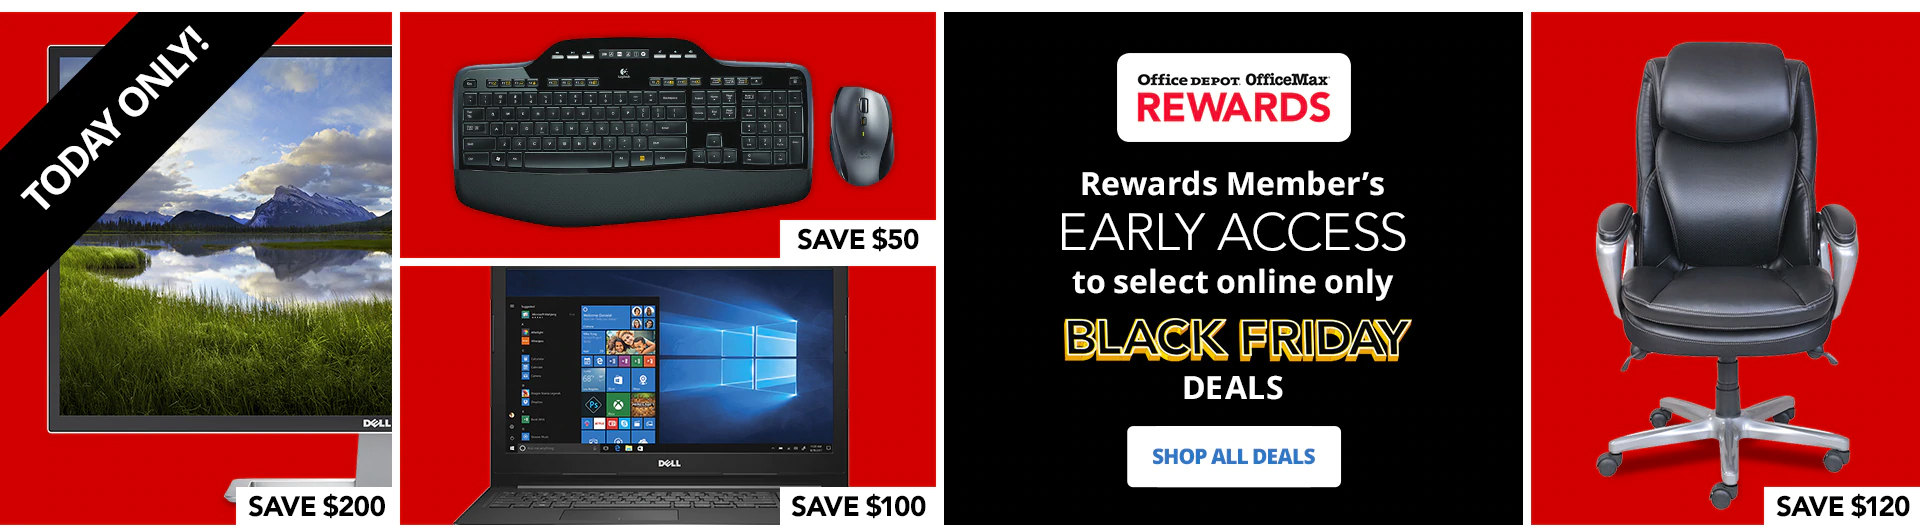 Countdown To Black Friday Early Access Office Depot Rewards